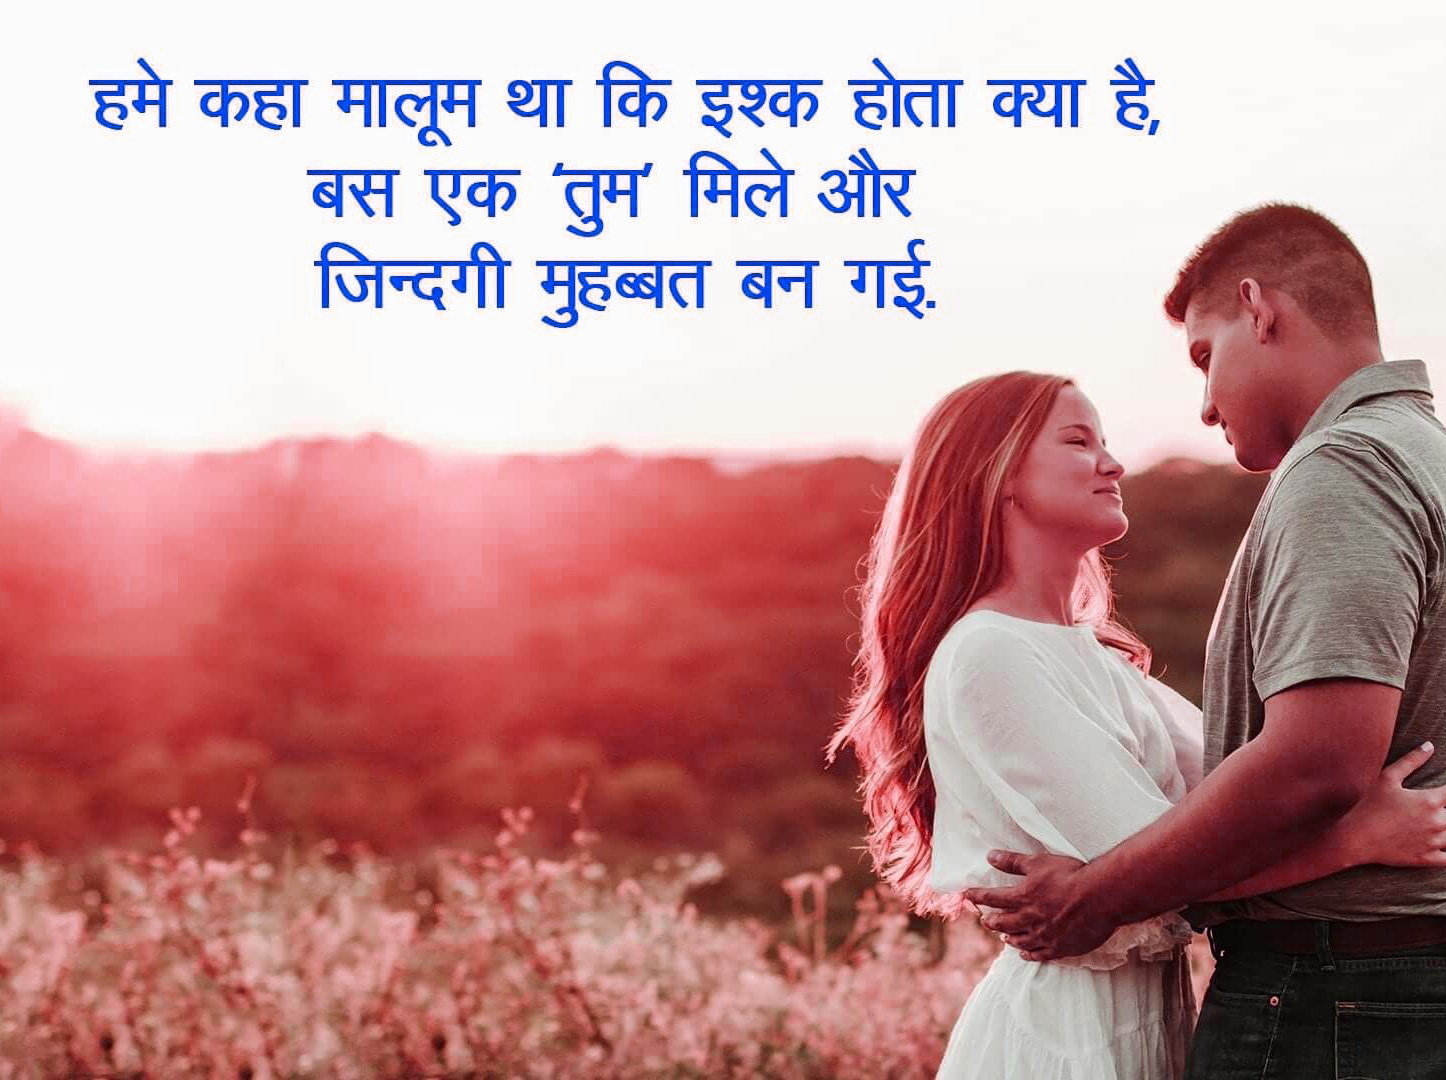 Hindi Quotes Whatsapp dp Profile Images pics Download